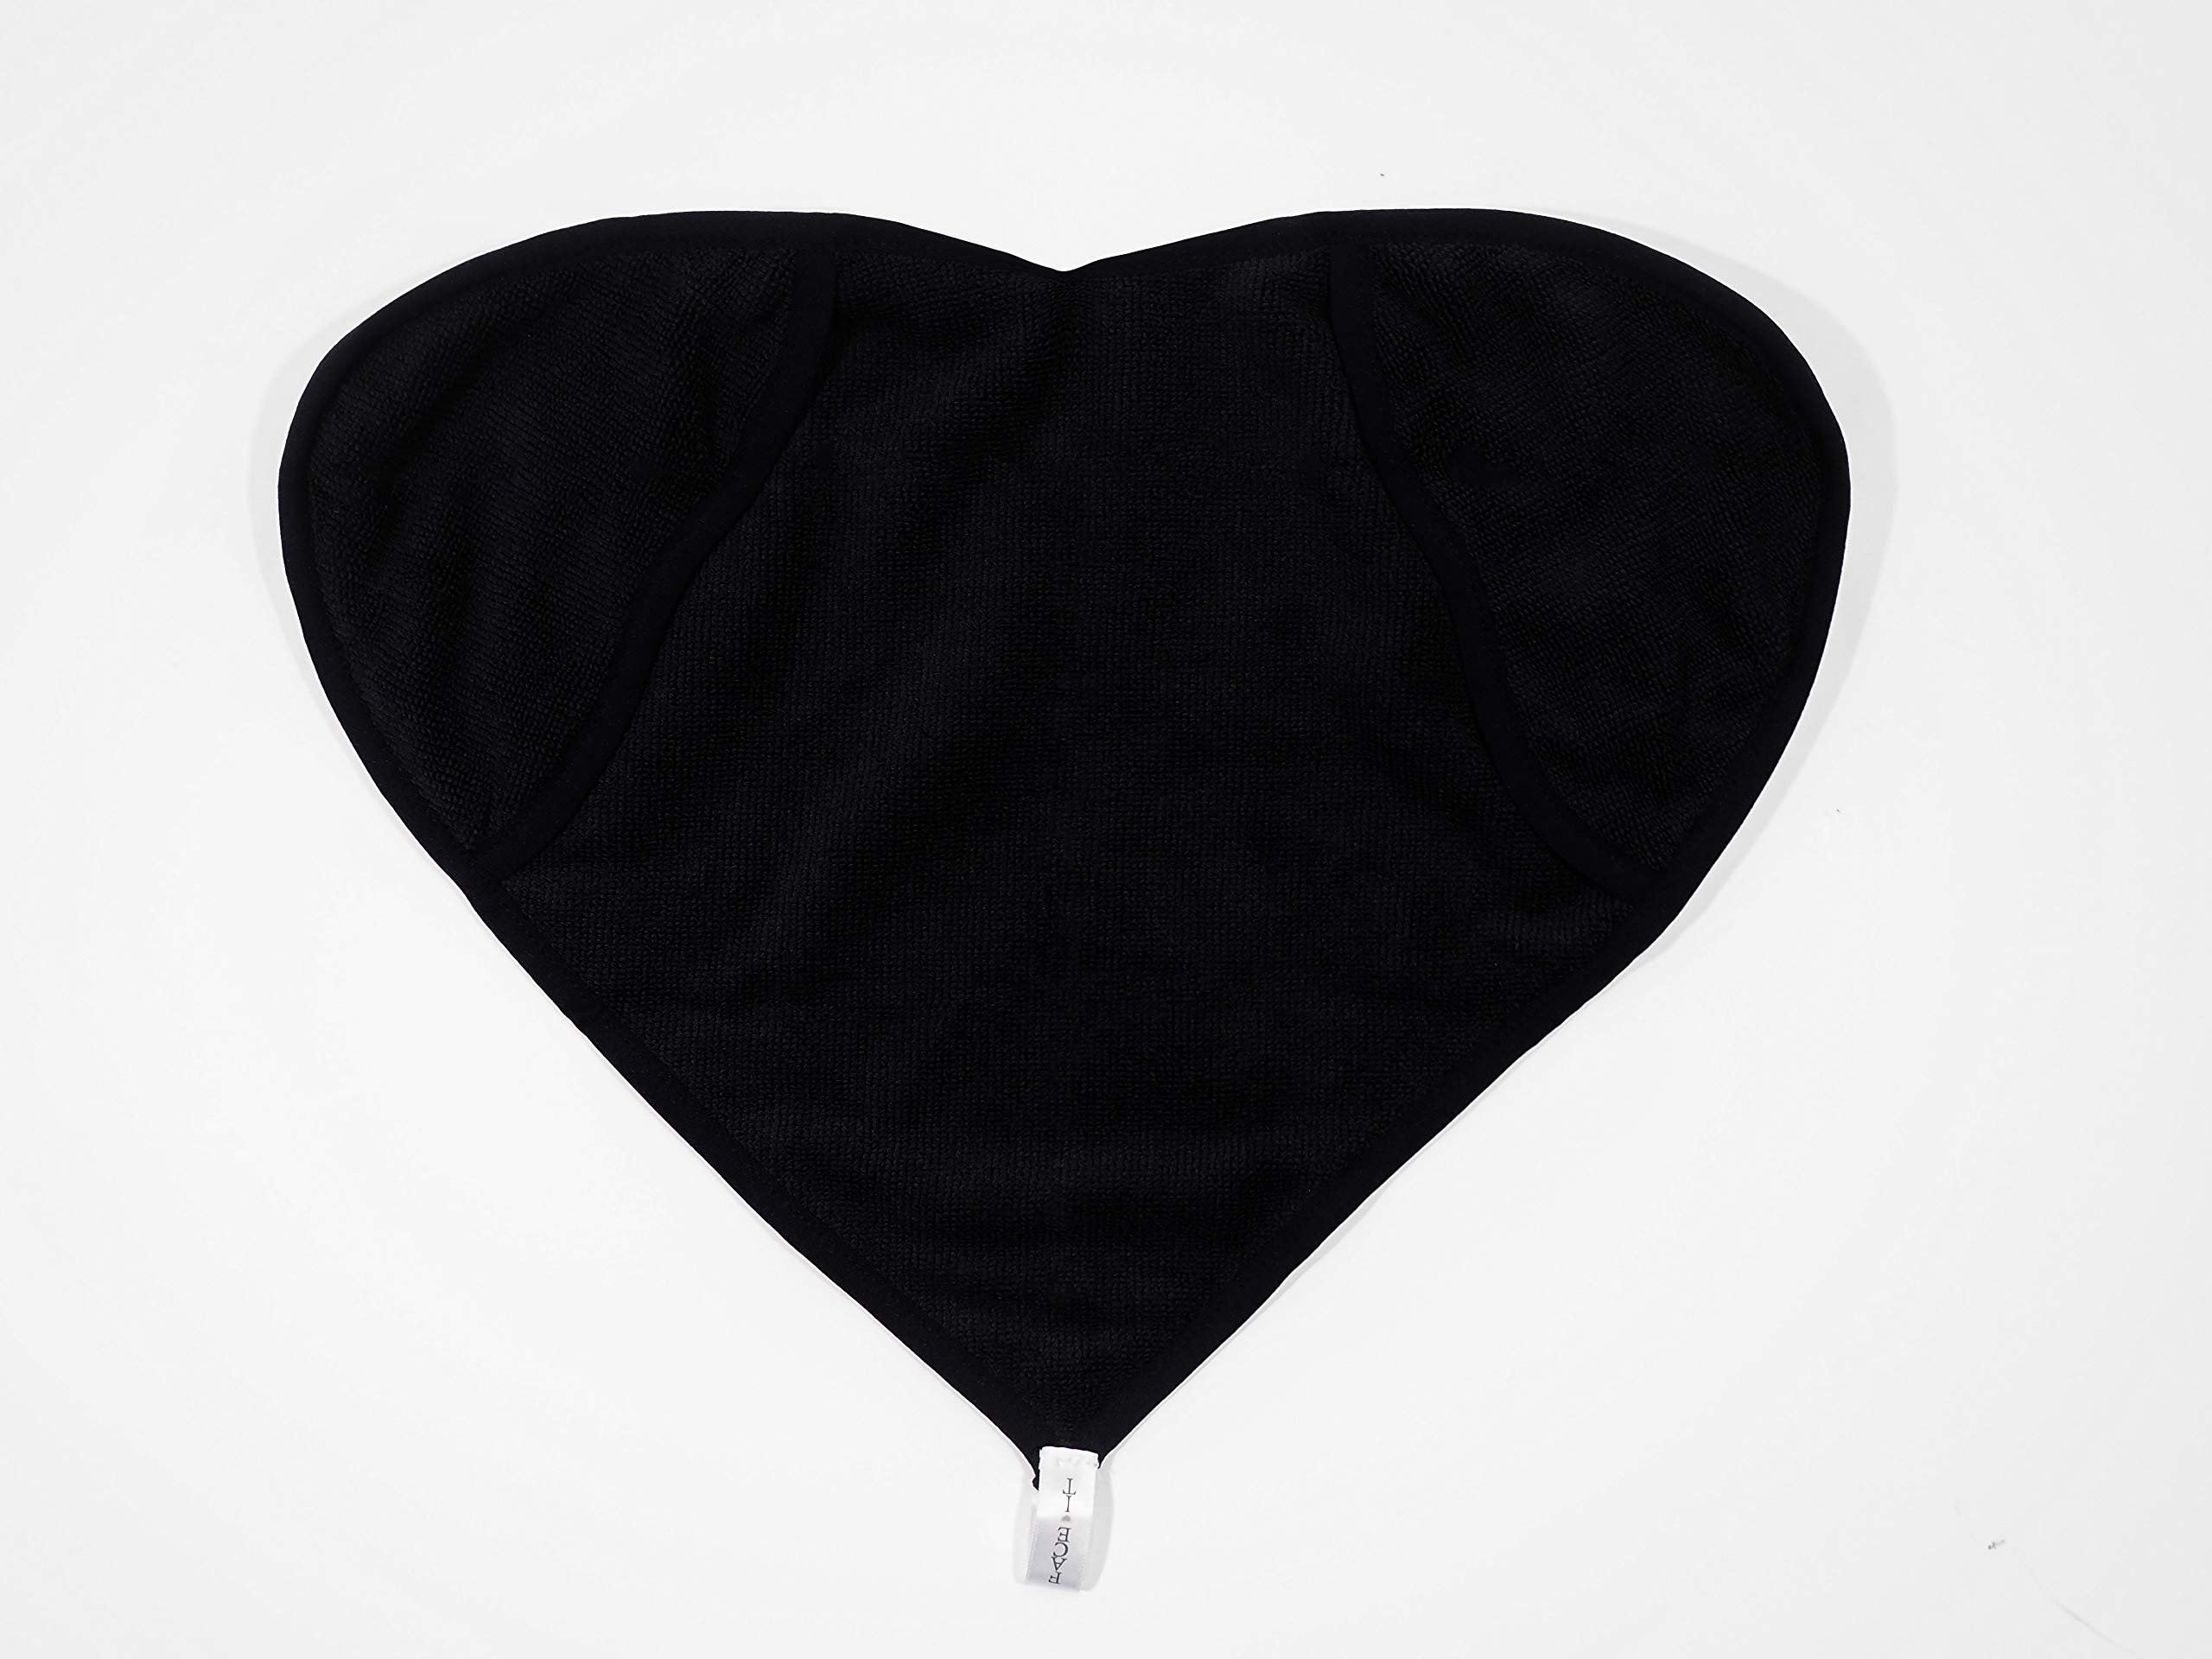 Black Cloth in a Box - Ultra Soft, Microfiber, Exfoliating, Heart Shaped Facecloth/Washcloth with Hand Pockets to Remove Makeup, Clean Pores and Wipe your Face Clean